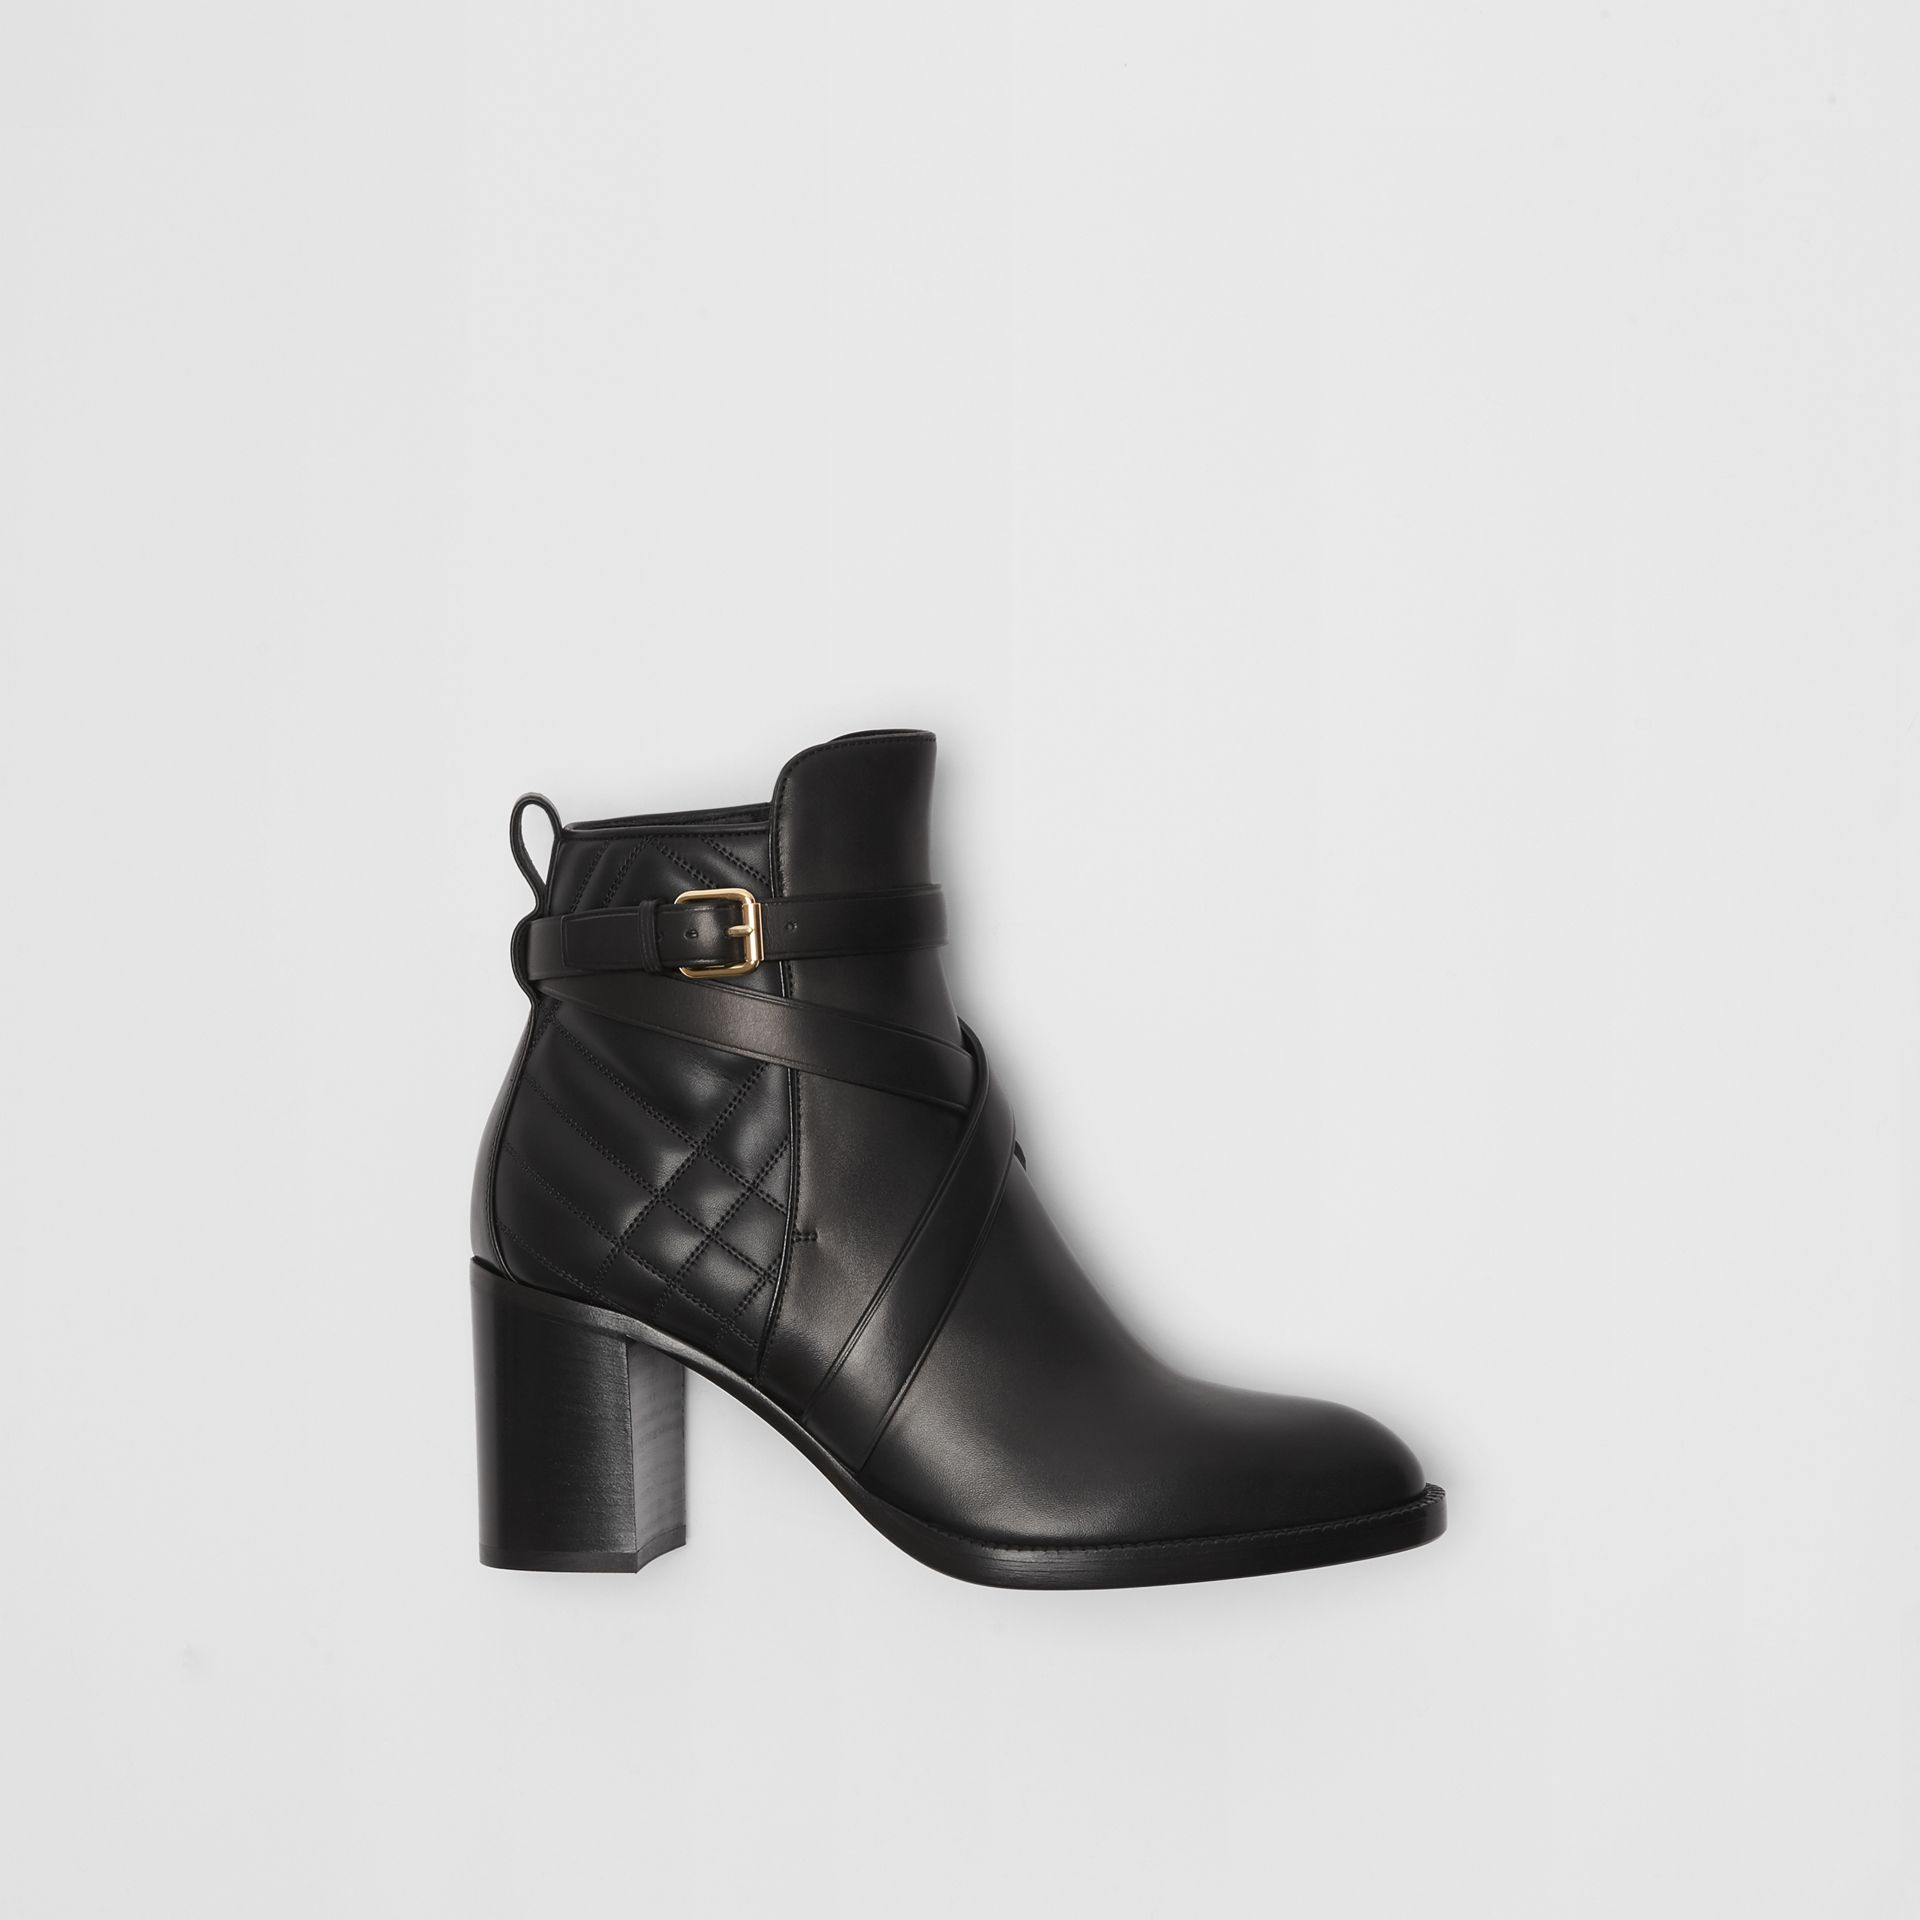 Bottines en cuir matelassé avec sangle (Noir) - Femme | Burberry Canada - photo de la galerie 0